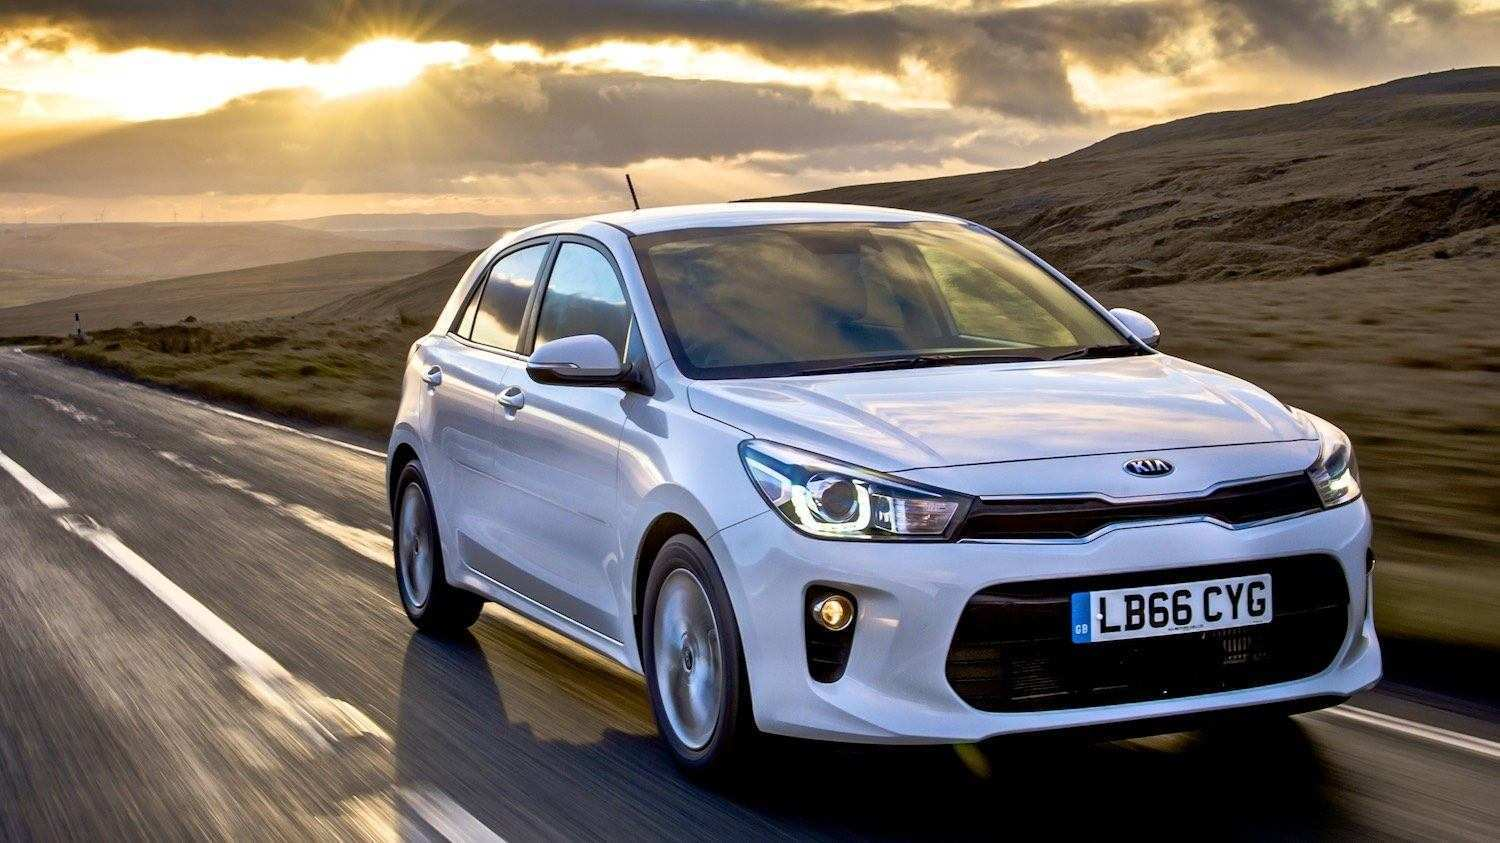 78 All New Kia Rio 2019 Review Interior